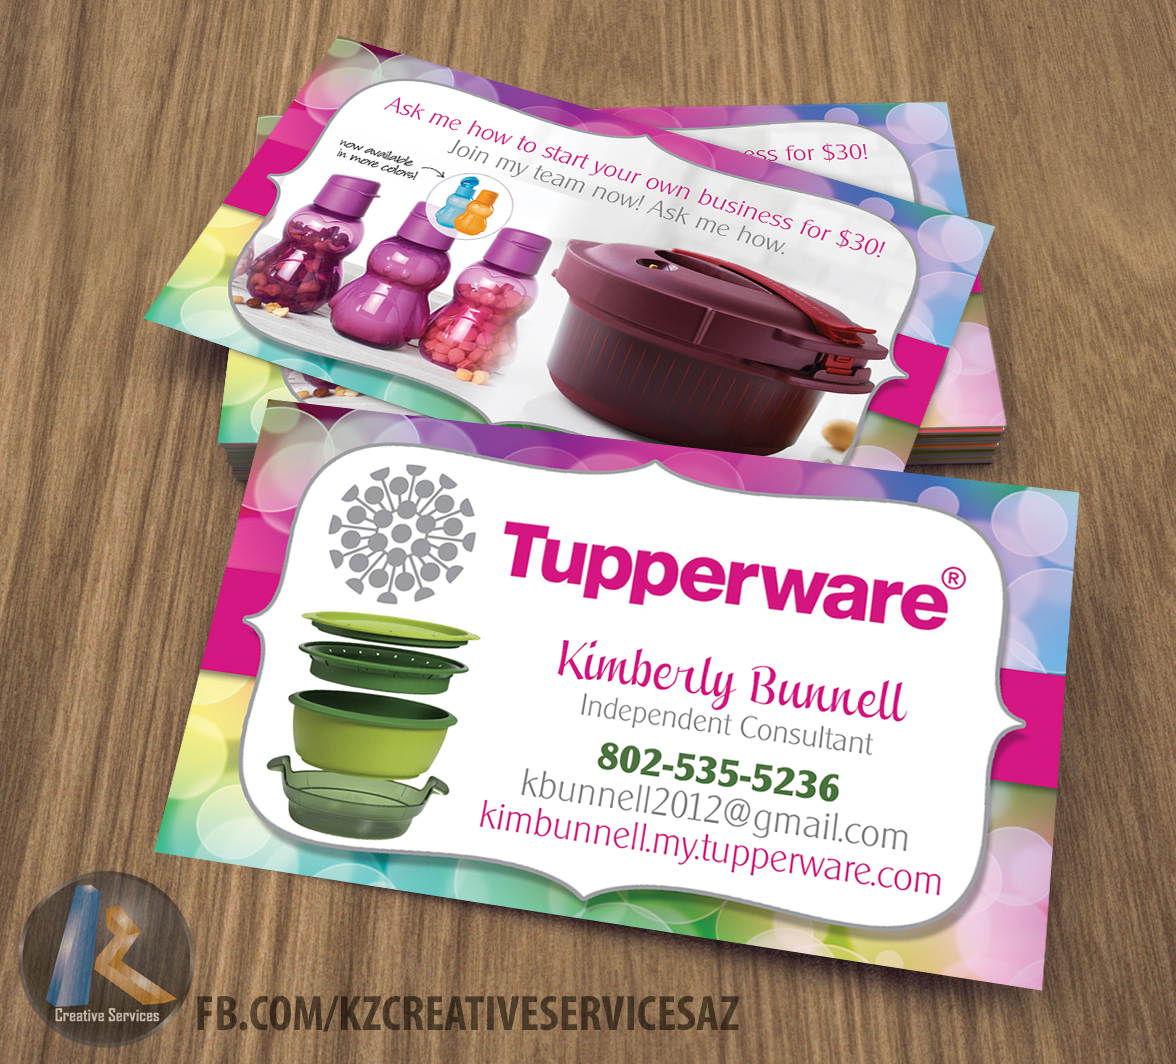 Tupperware business cards style 4 kz creative services for Tupperware business card templates